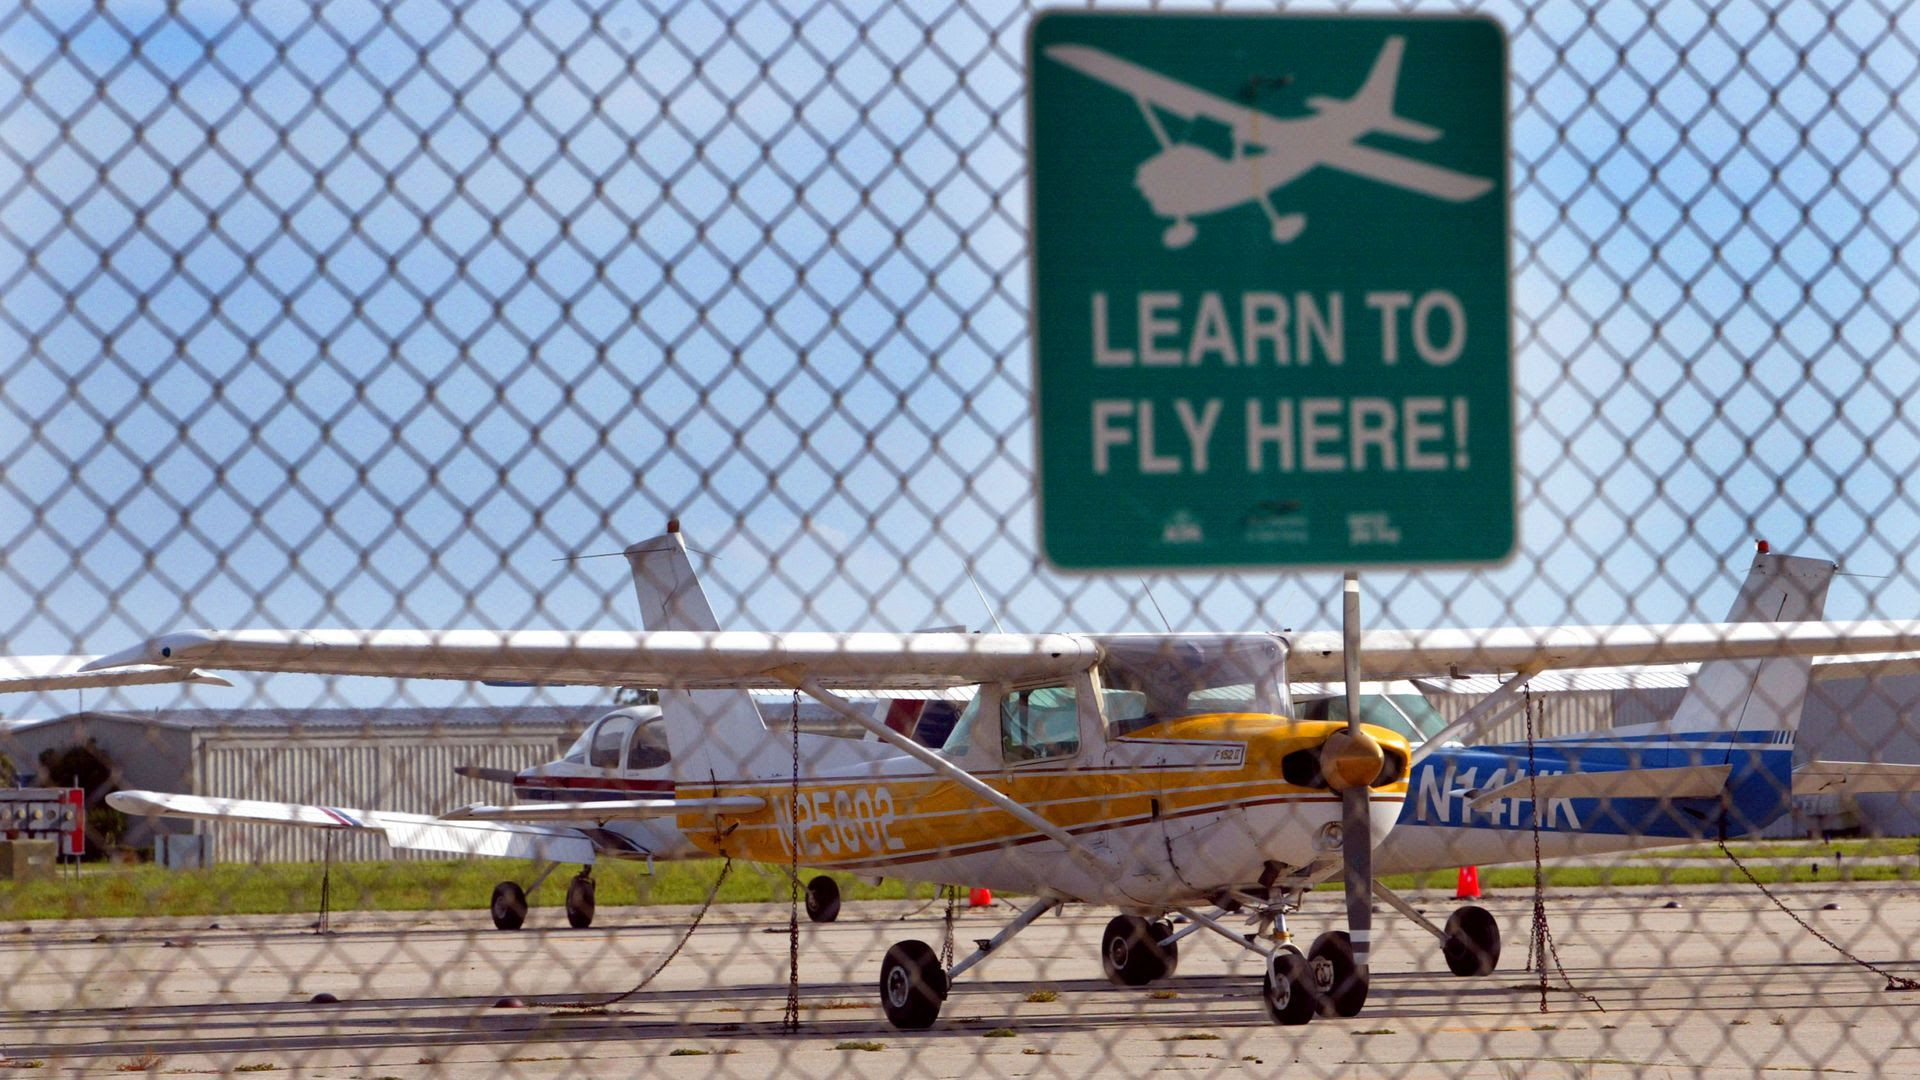 Small airplanes sit on the tarmac at the Venice Municipal Airport, where three 9/11 terrorists took flying lessons.